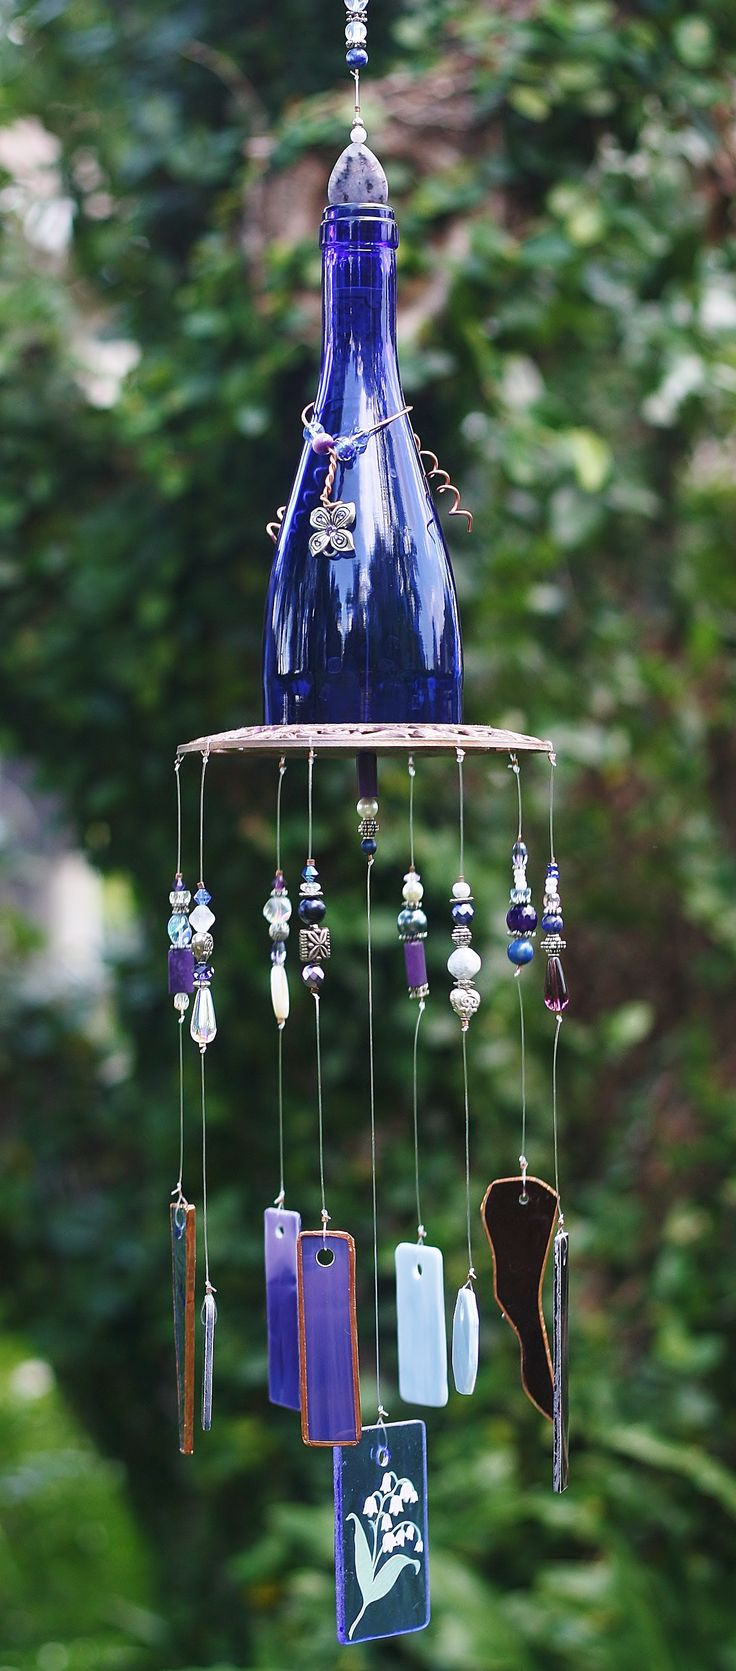 Beautiful OOAK Wine Bottle Wind Chime Once Upon A Chime Unique gift idea